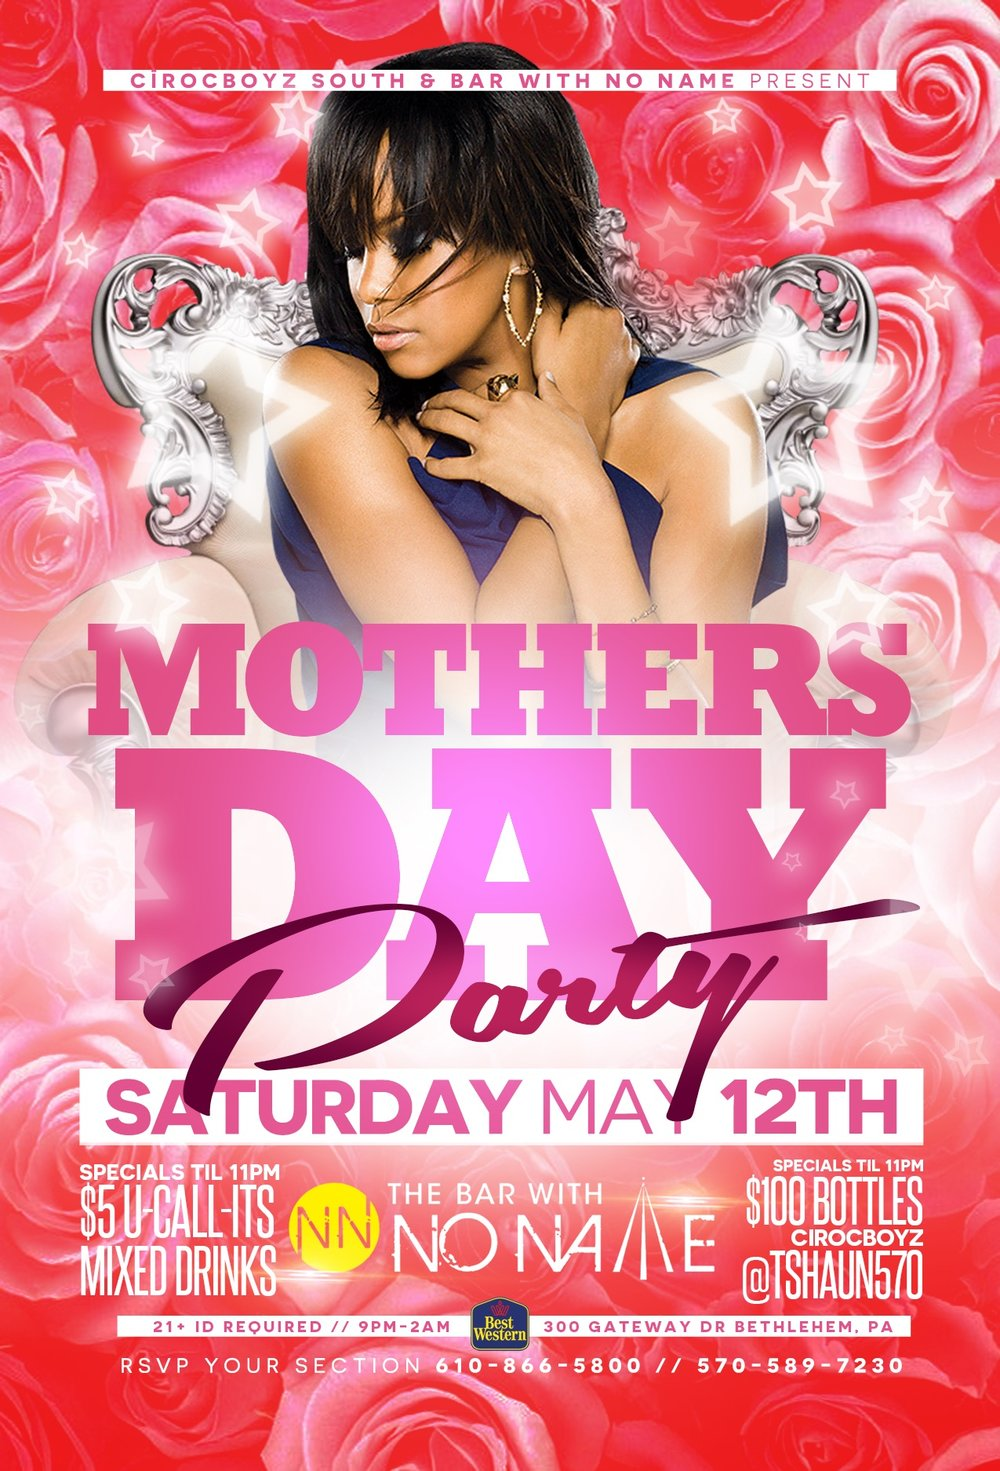 Mother's Day Party Saturday with Cirocboyz South